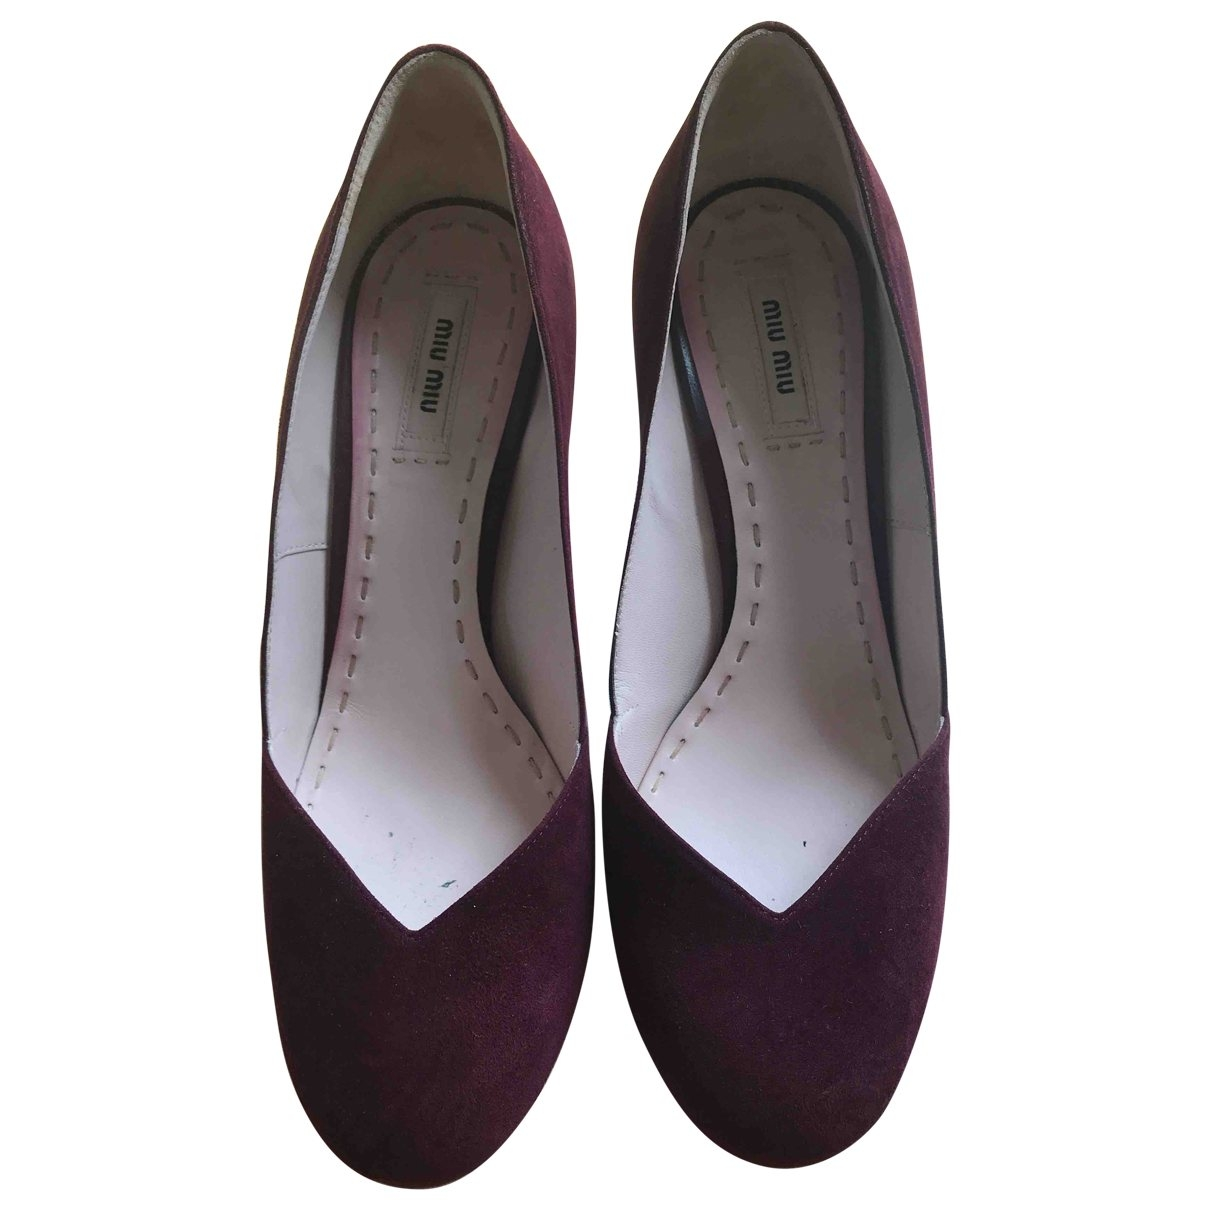 Miu Miu \N Burgundy Suede Heels for Women 40 EU